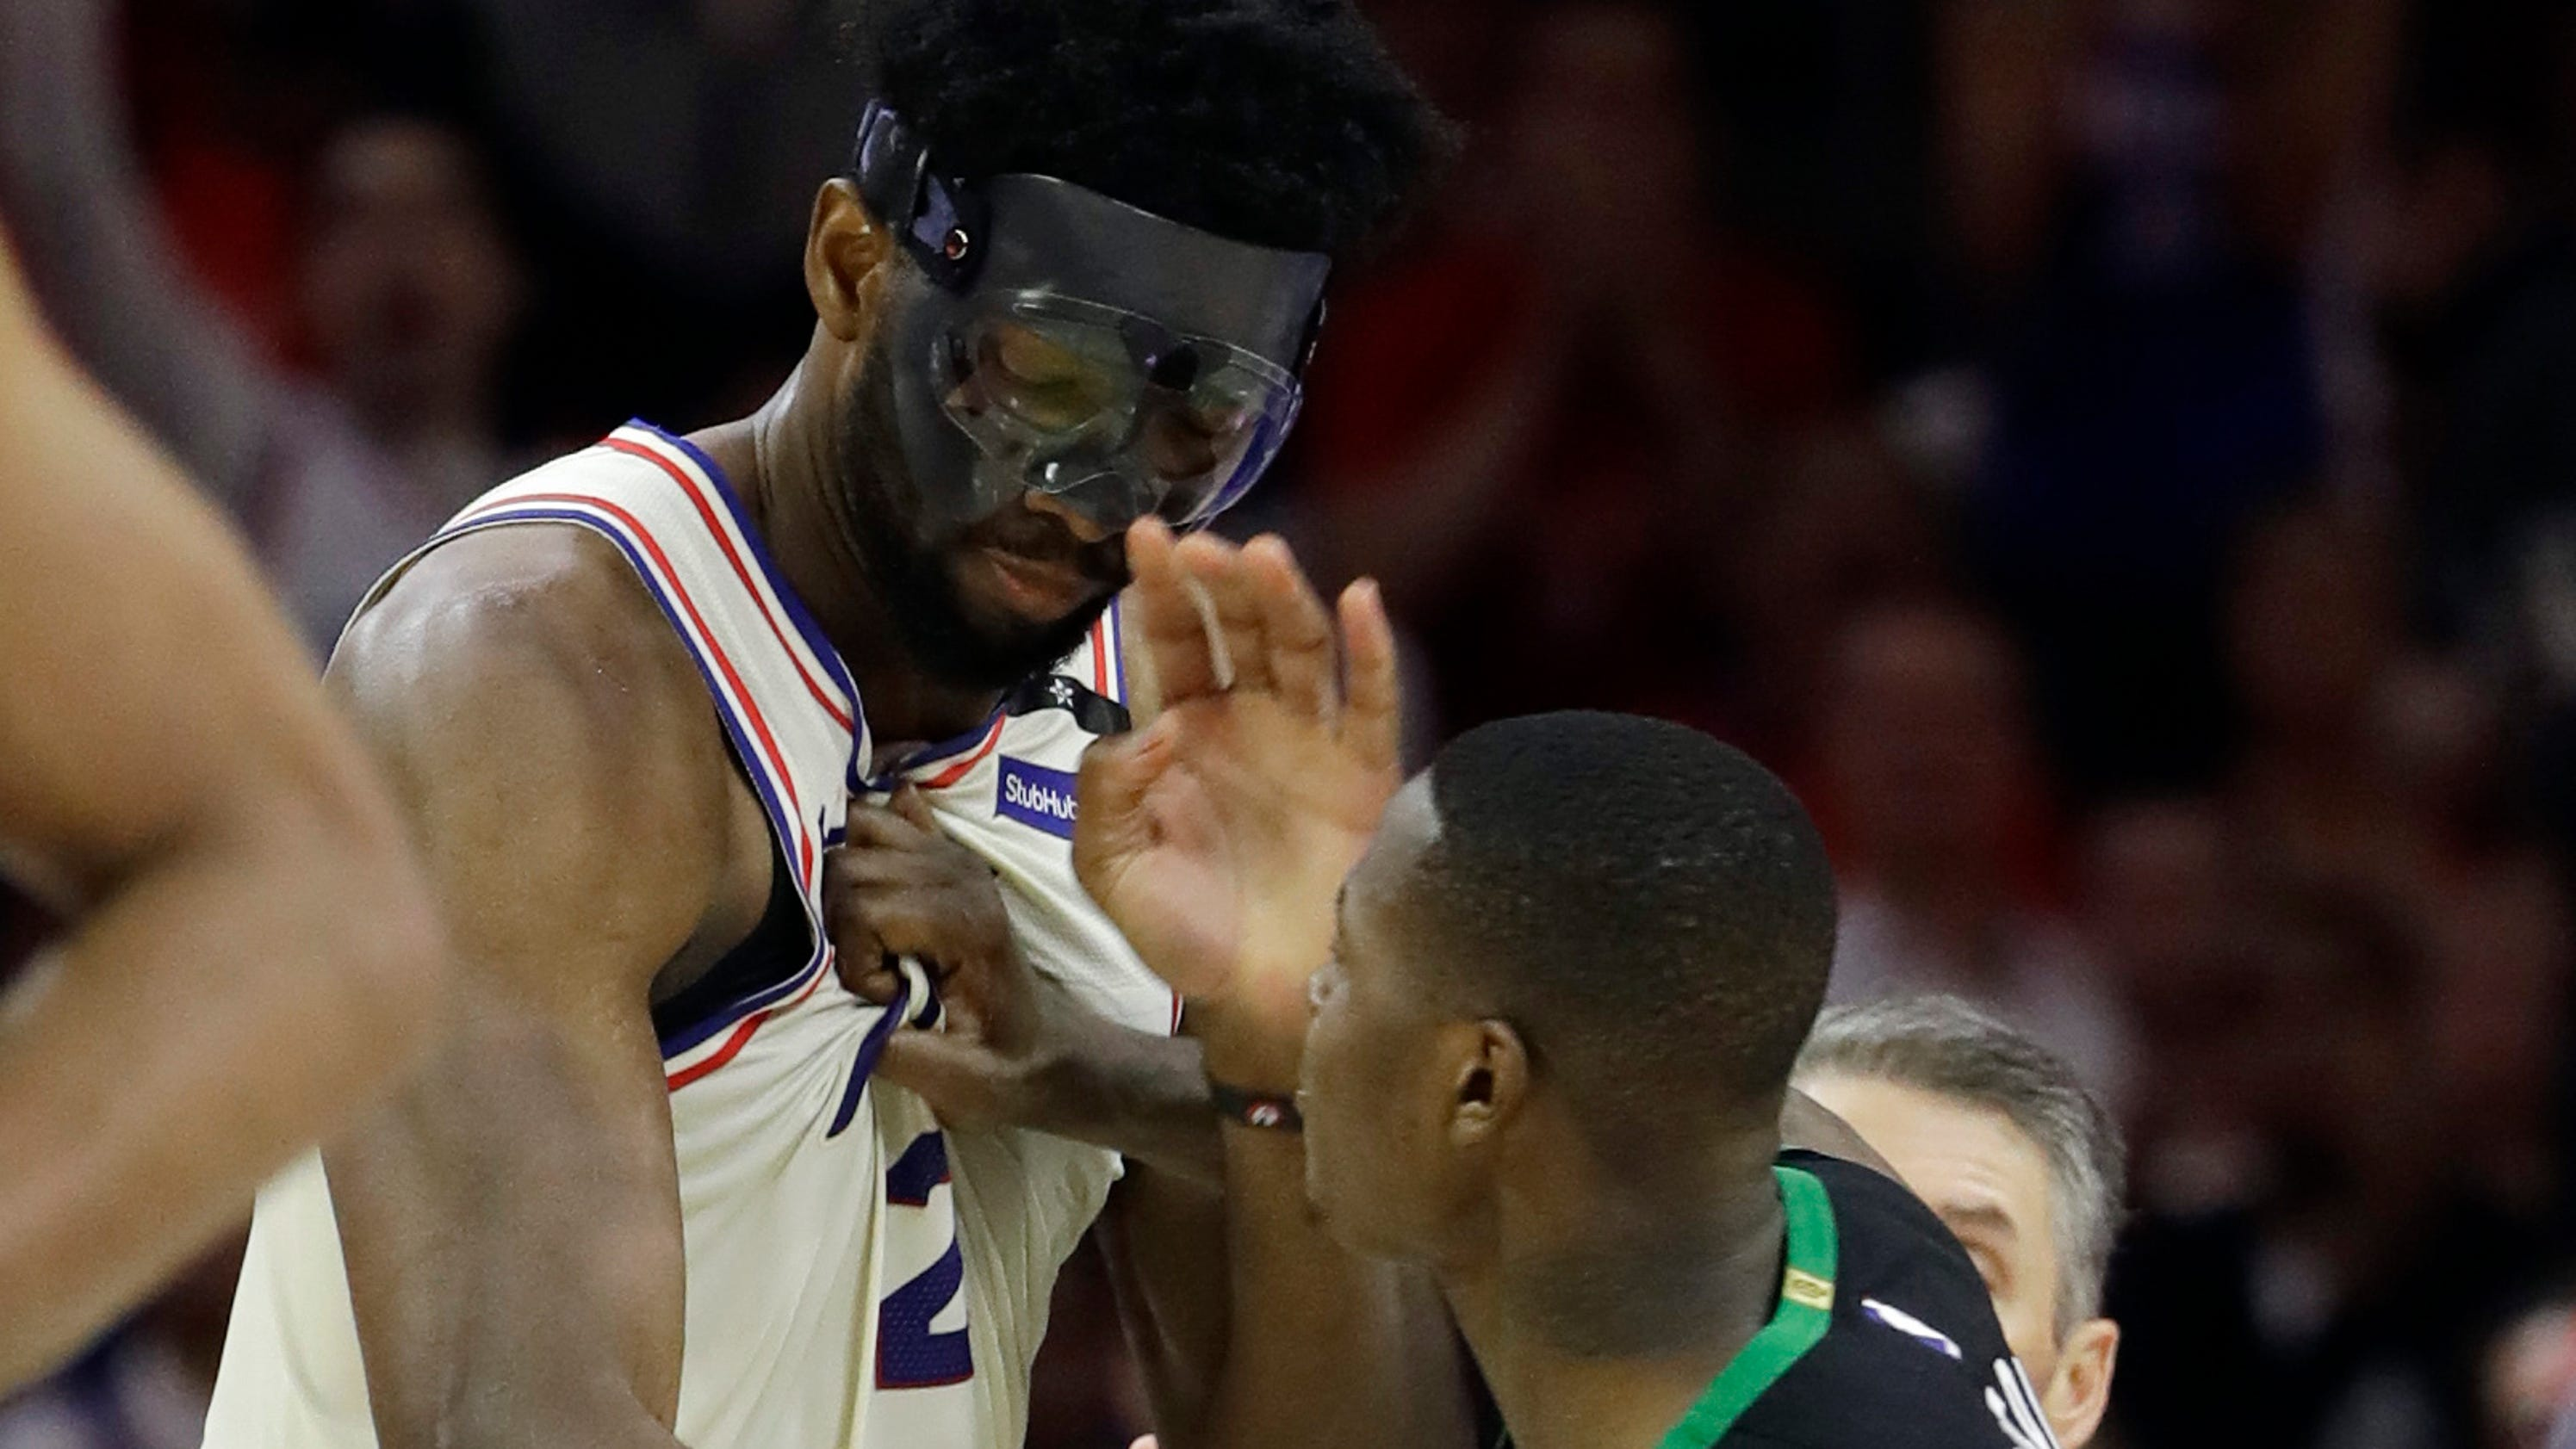 Embiid and Terry Rozier got into heated scuffle